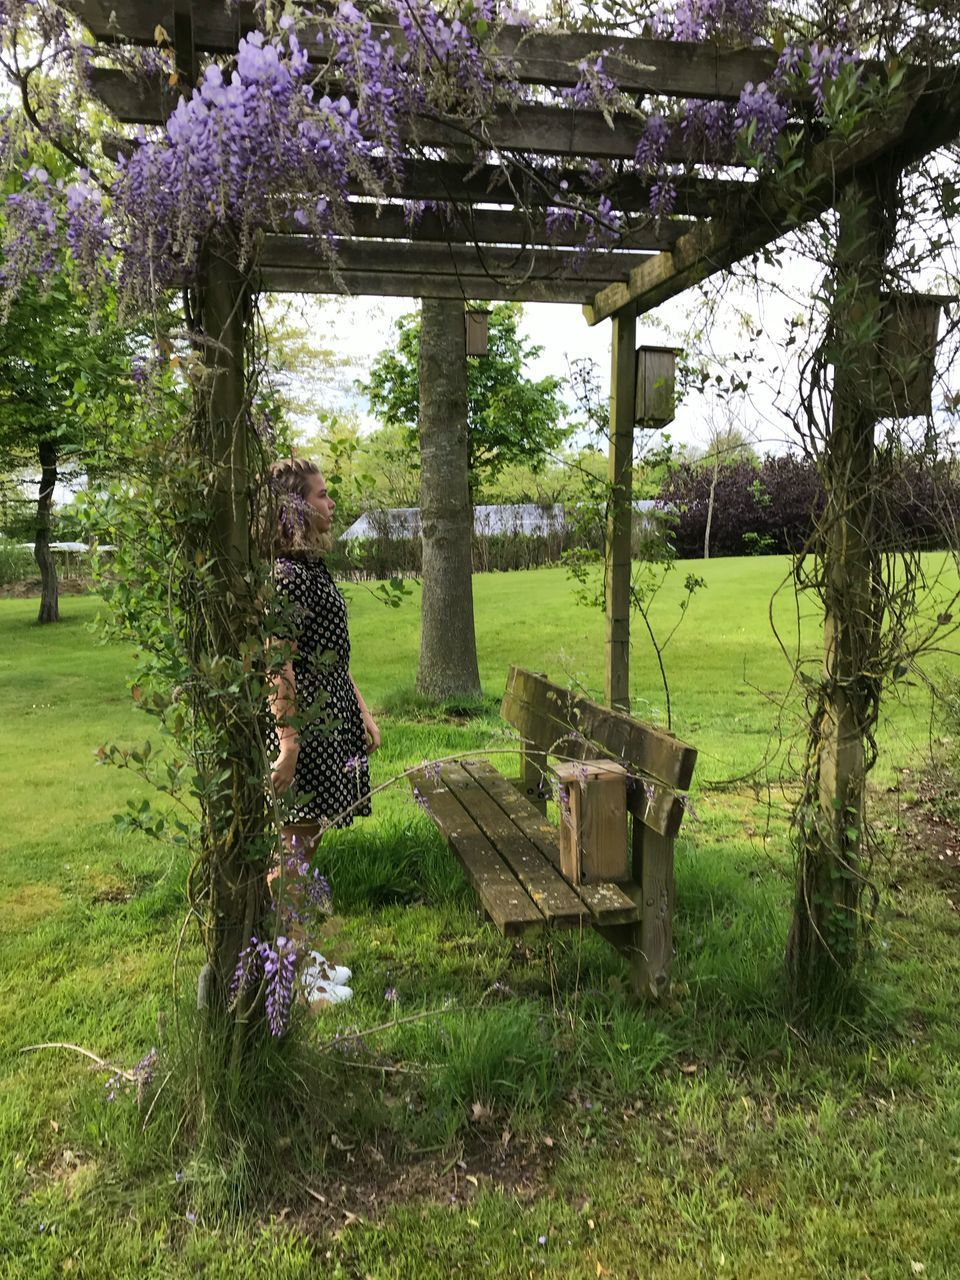 plant, tree, grass, growth, flowering plant, nature, flower, day, one person, beauty in nature, green color, real people, field, park, seat, land, full length, park - man made space, women, lifestyles, outdoors, springtime, purple